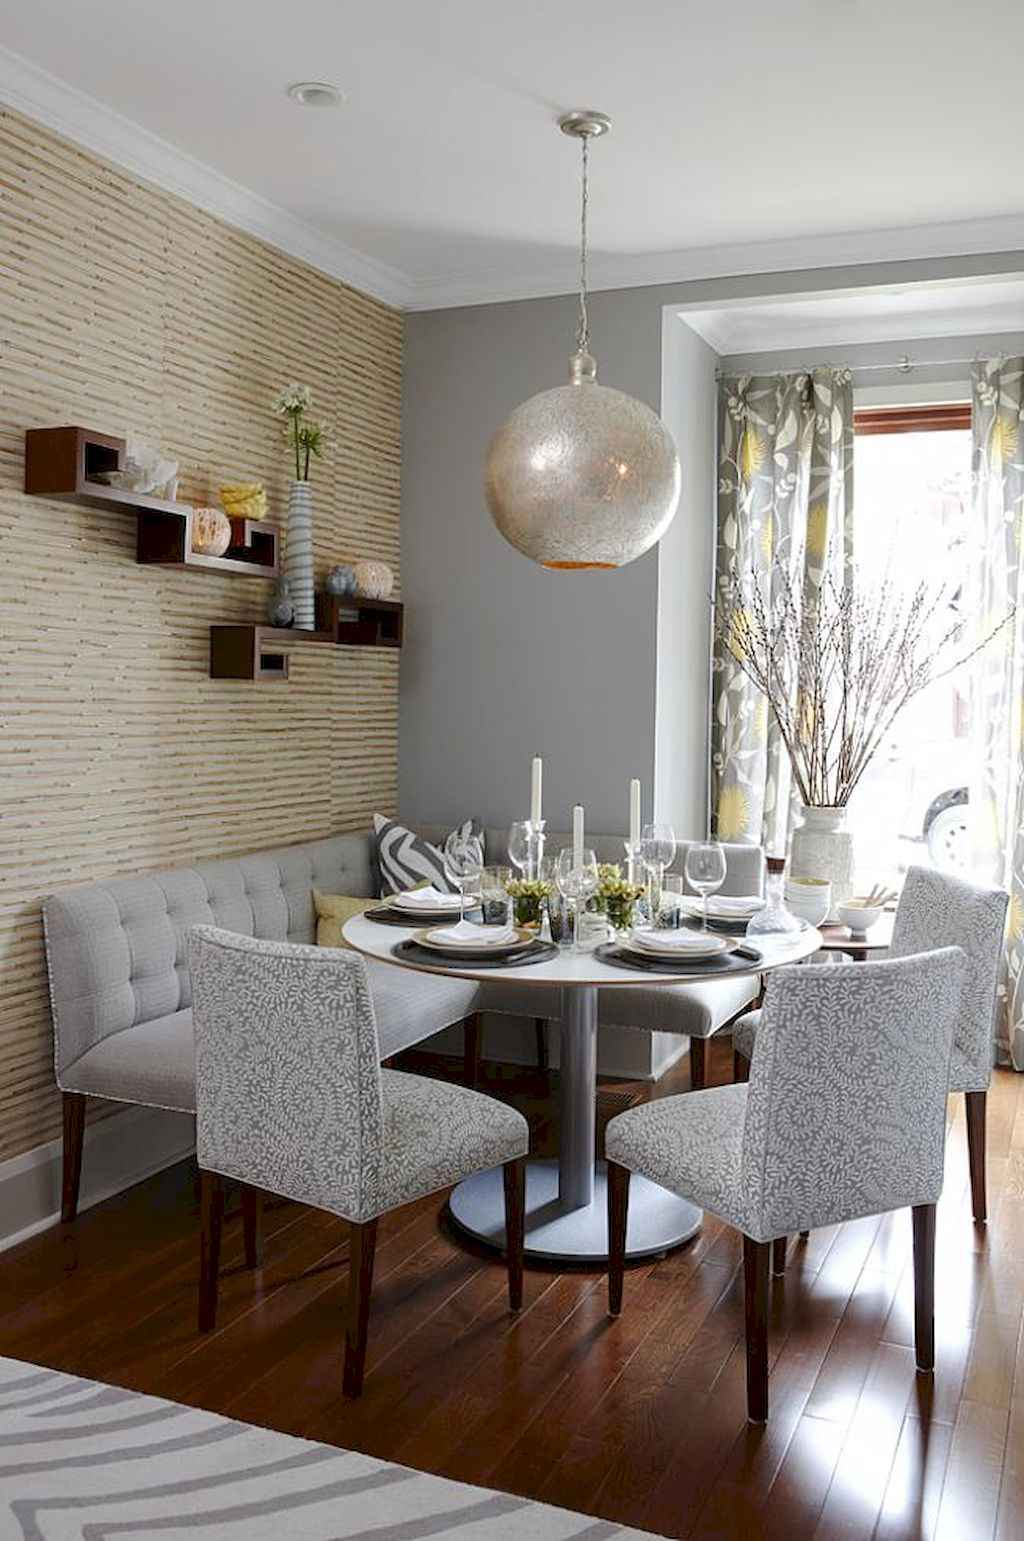 Clever small dining room ideas (51)